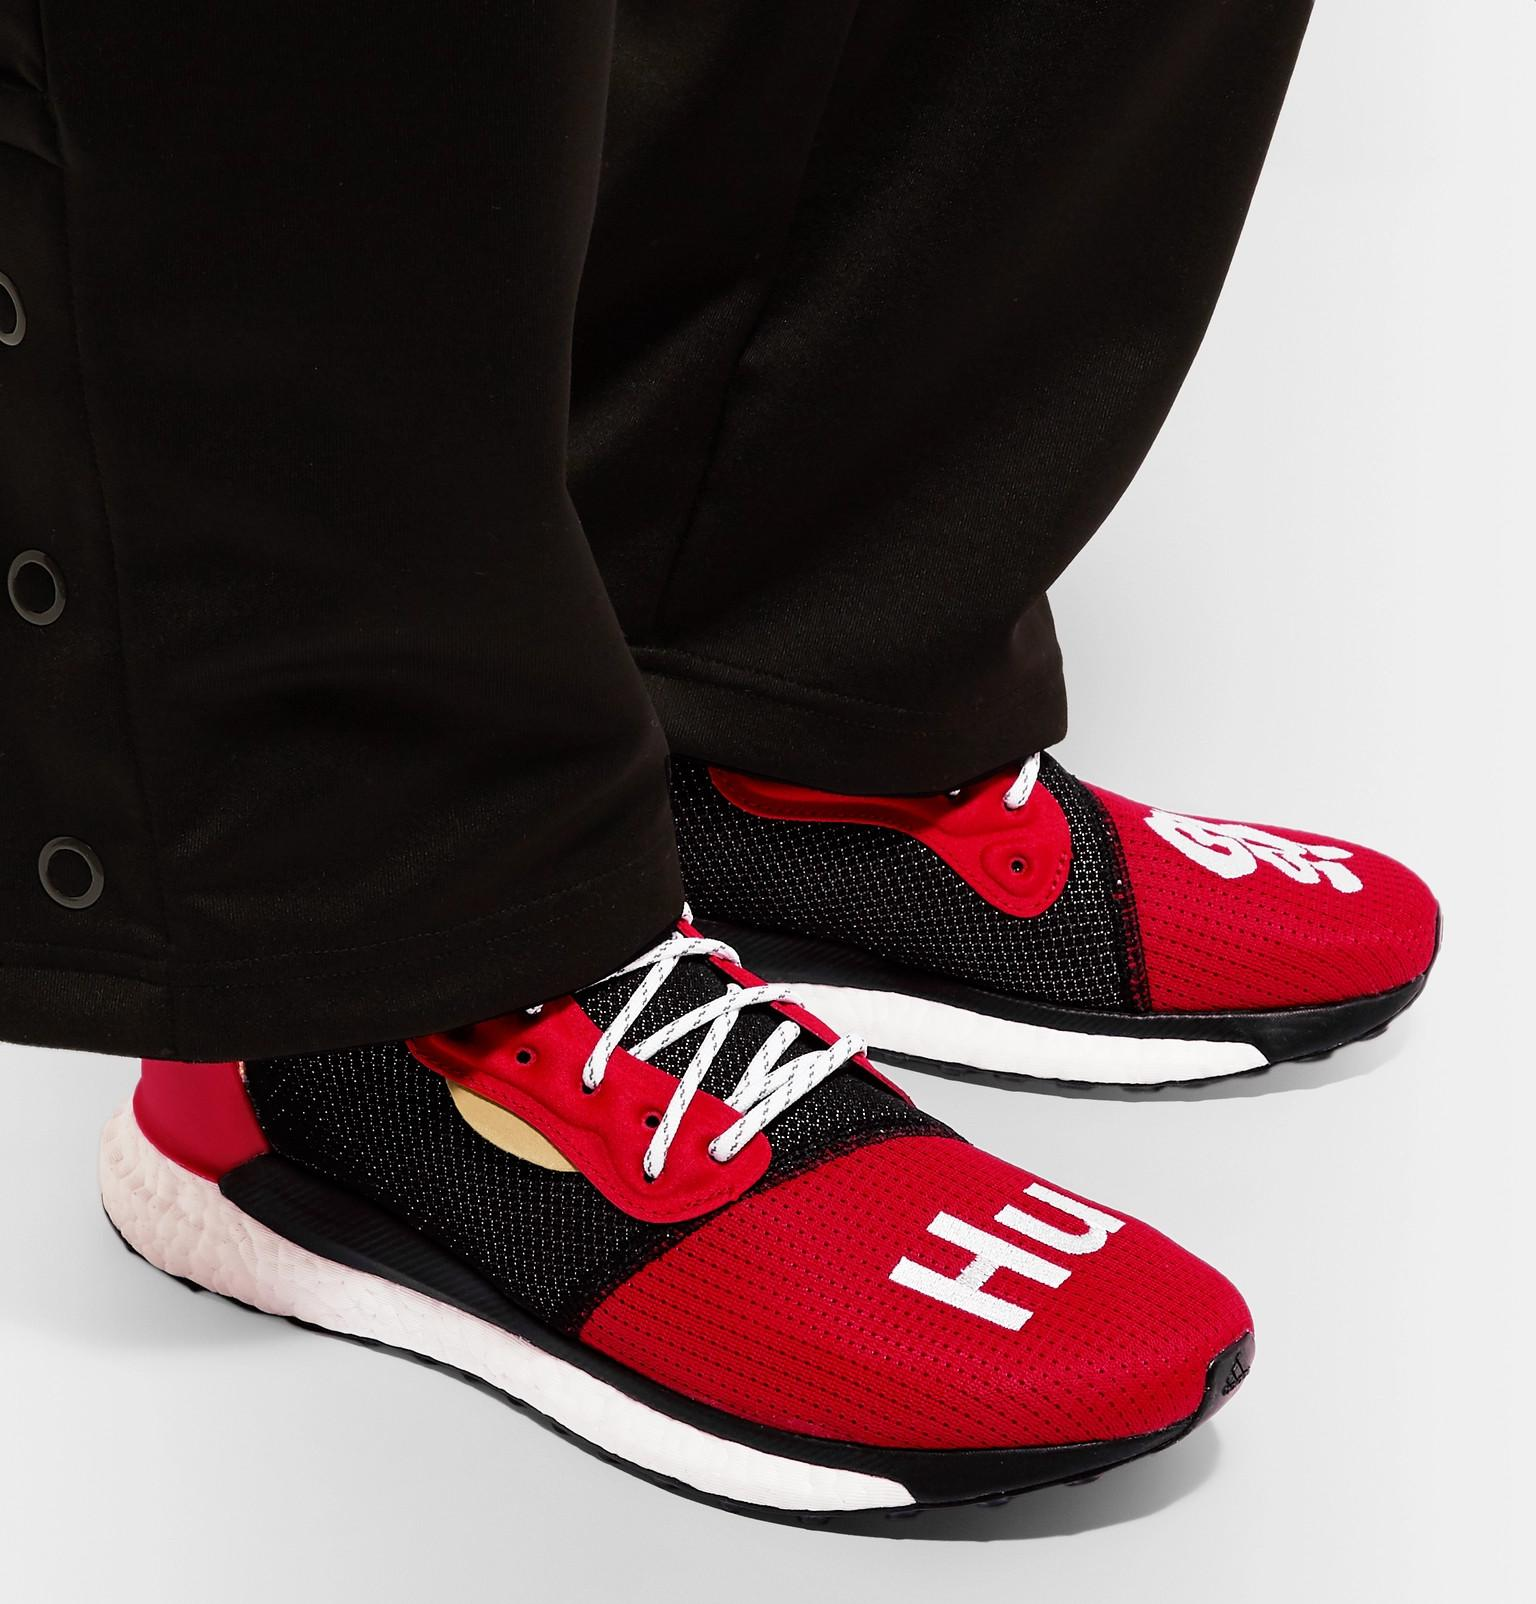 Red For Sneakers Cny Williams Solarhu Adidas Originals Pharrell In R0n44q